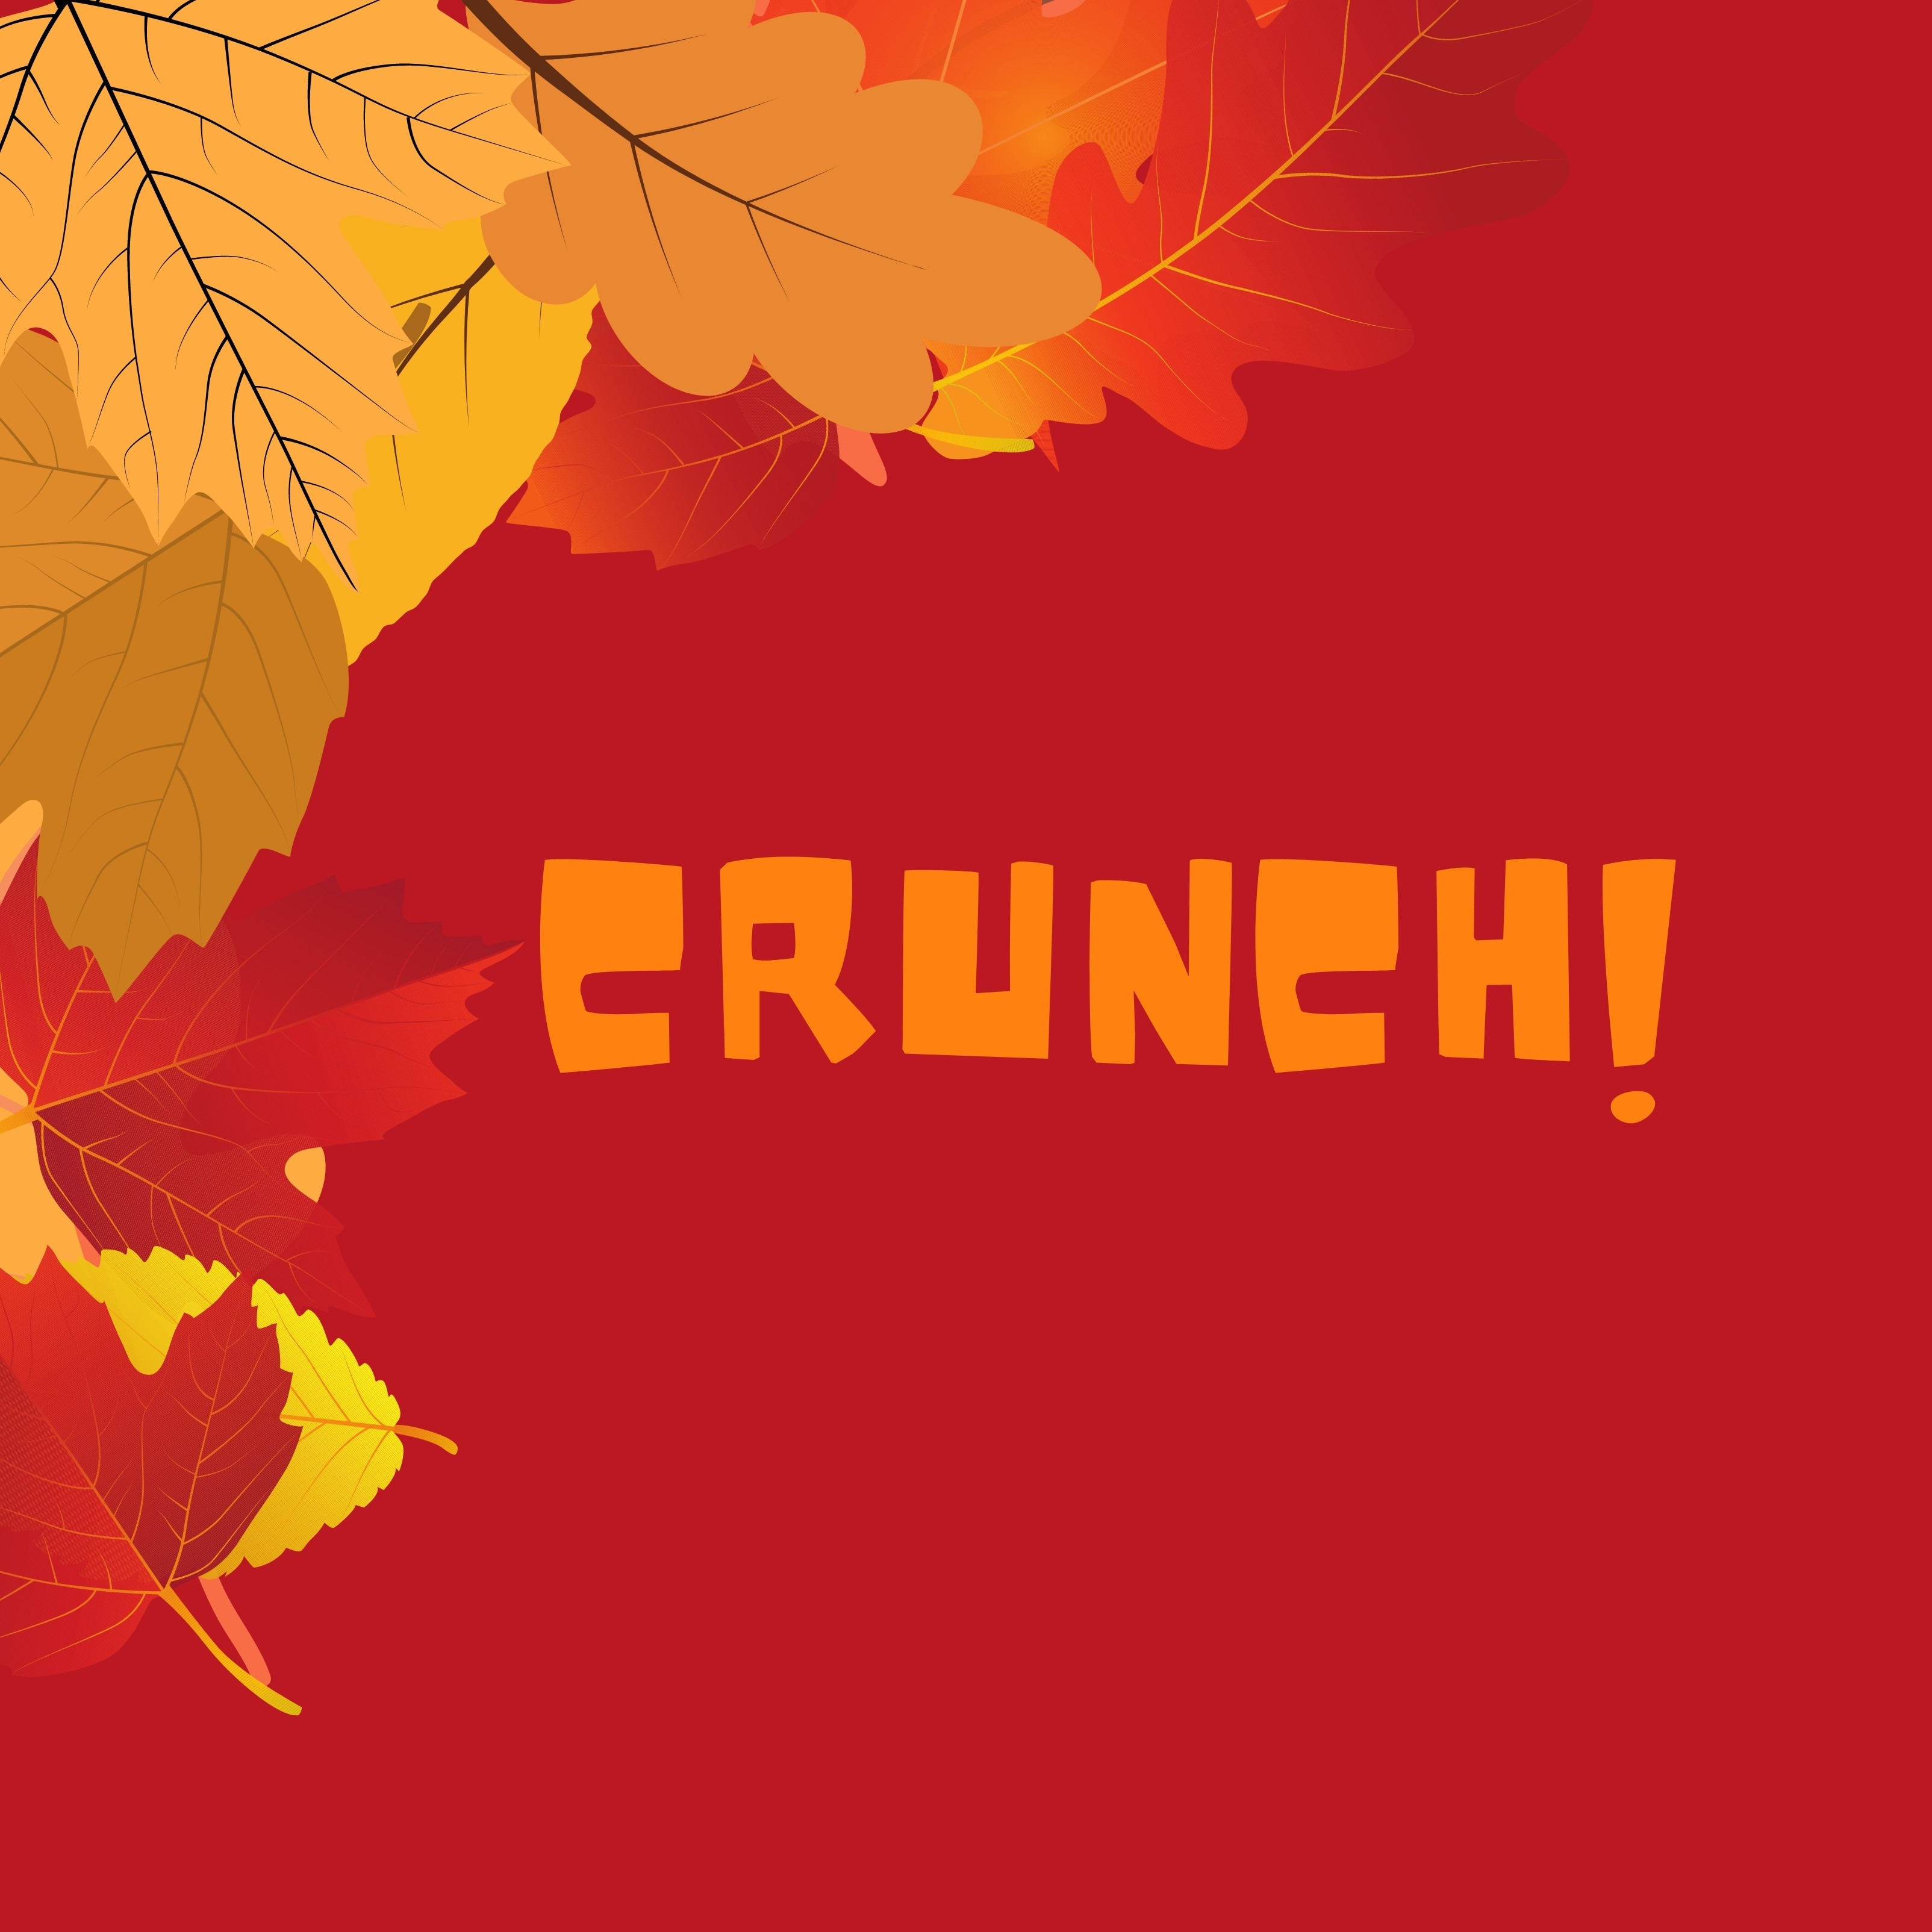 iPad Wallpapers Crunch Autumn Leaves Red iPad Wallpaper 3208x3208 px